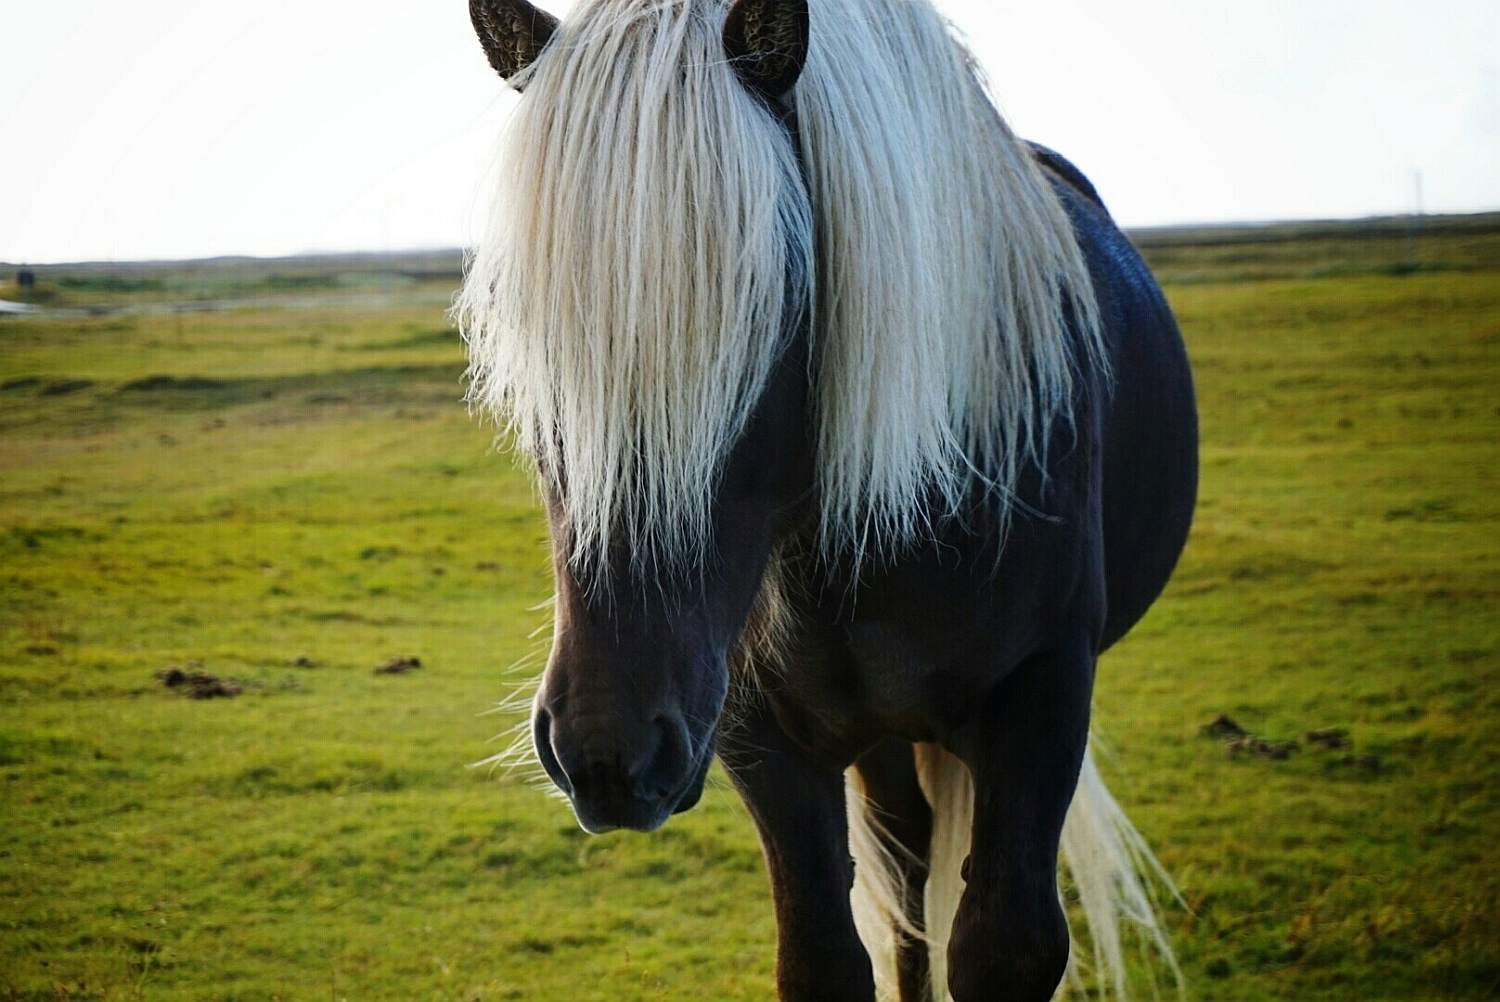 A horse with a white mane